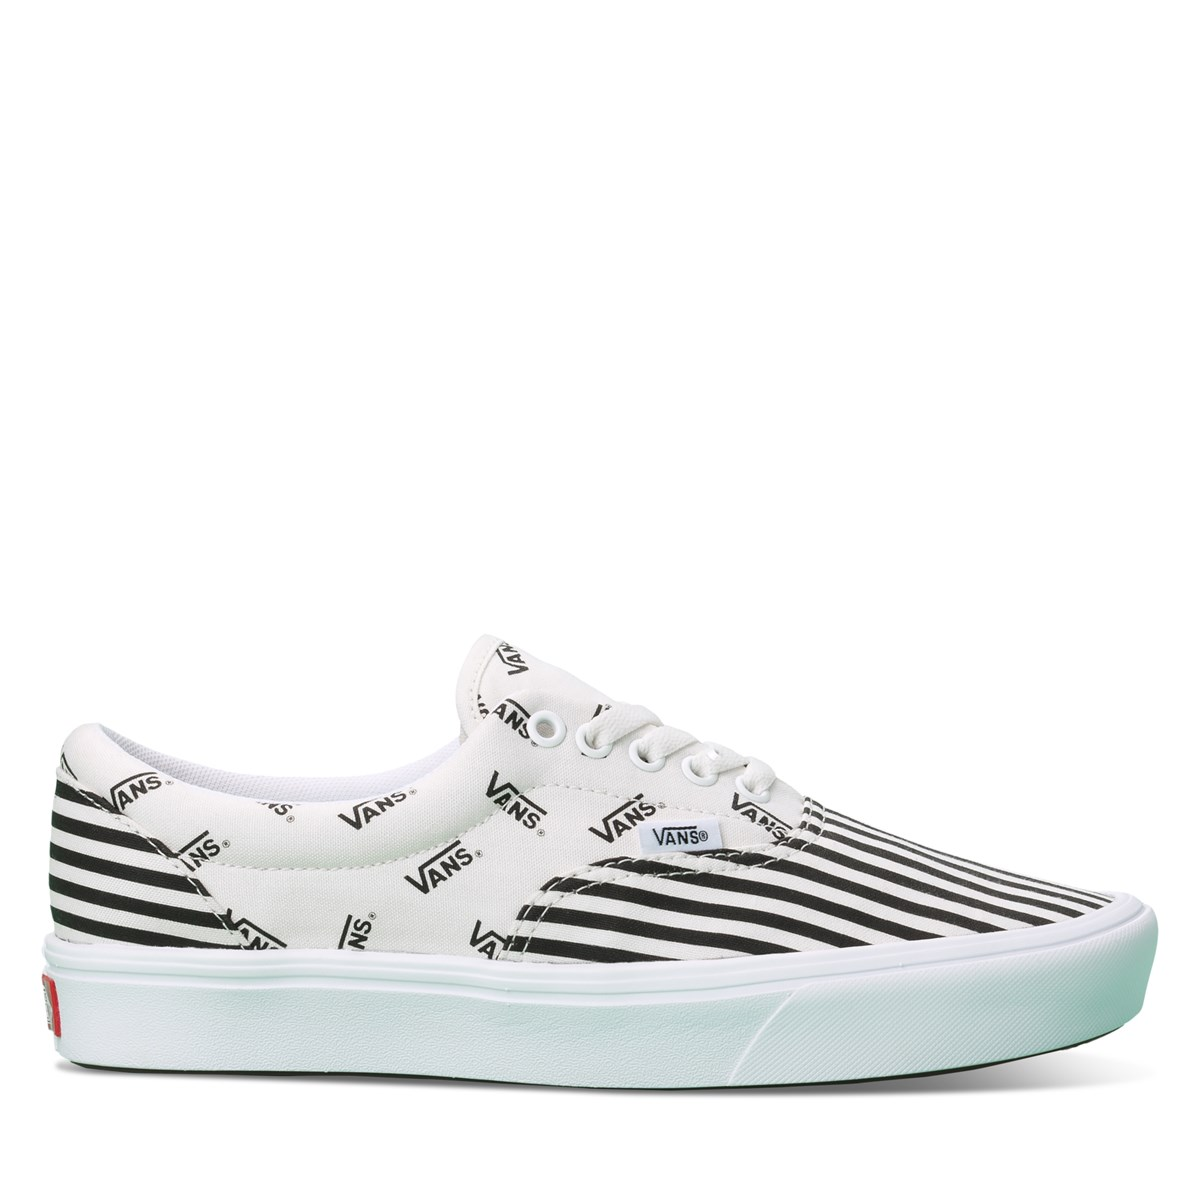 Women's ComfyCush Pinned Era Sneakers in White